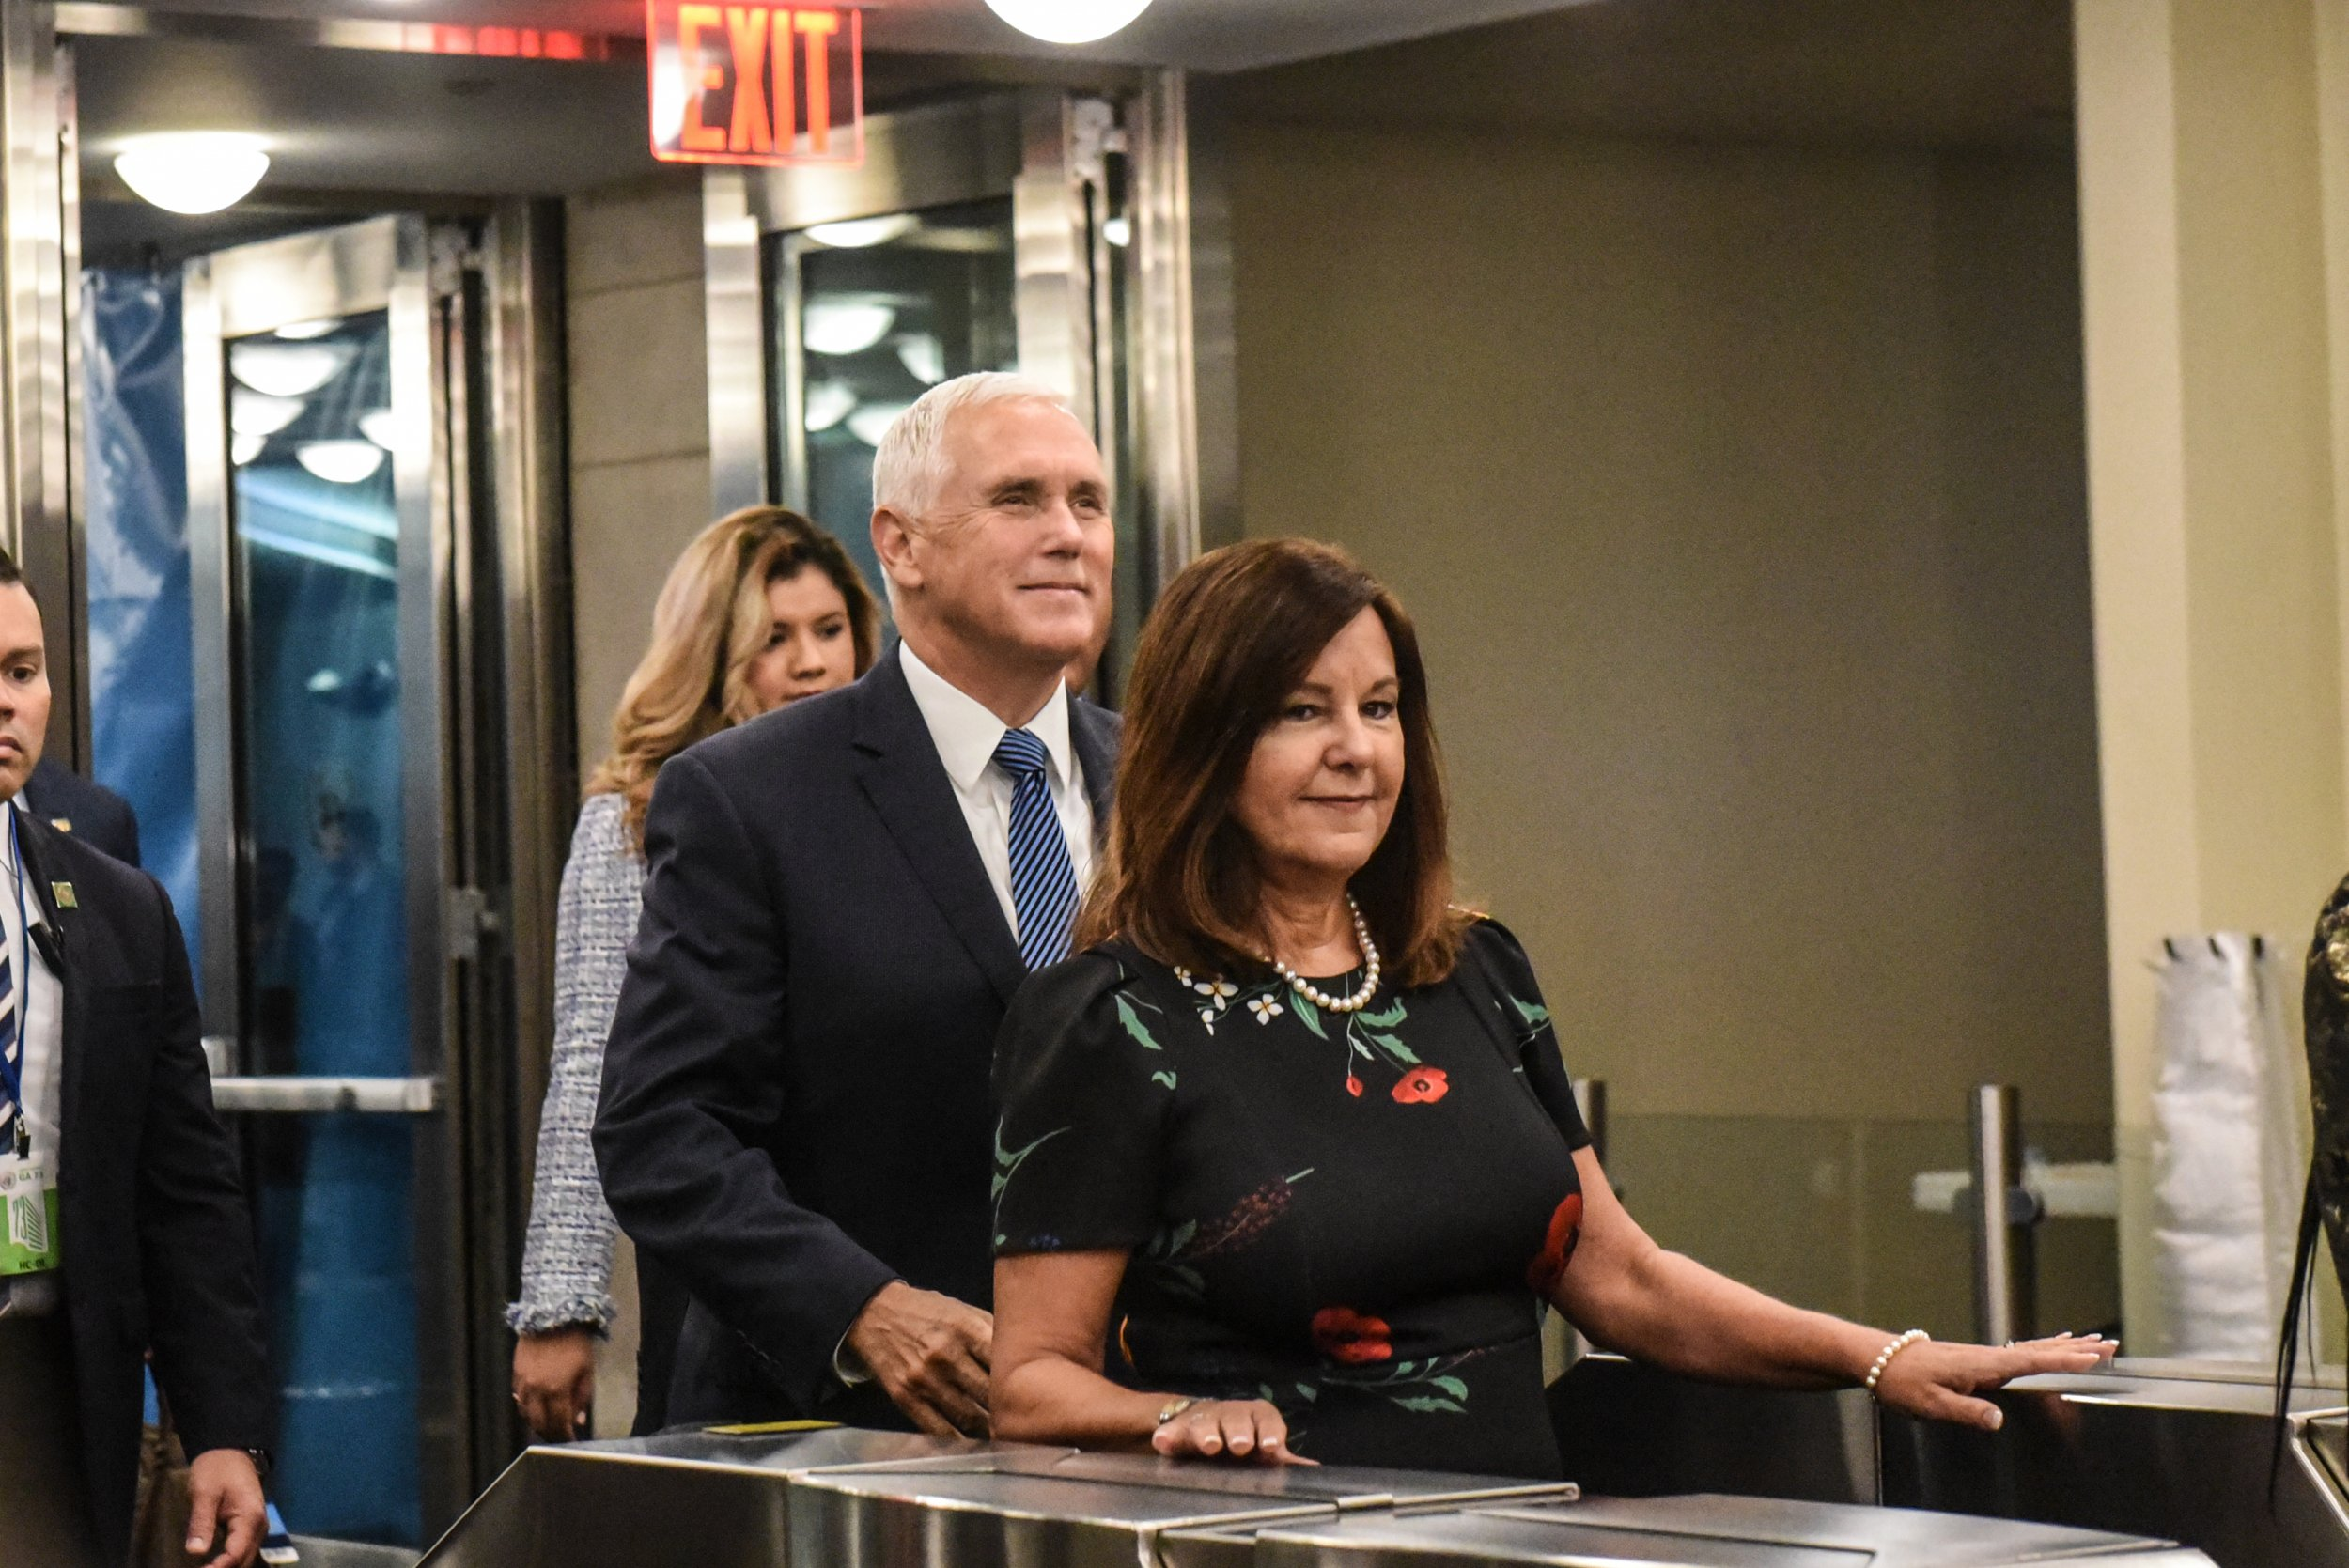 Karen pence, mike pence, mark harris homosexuality illegal